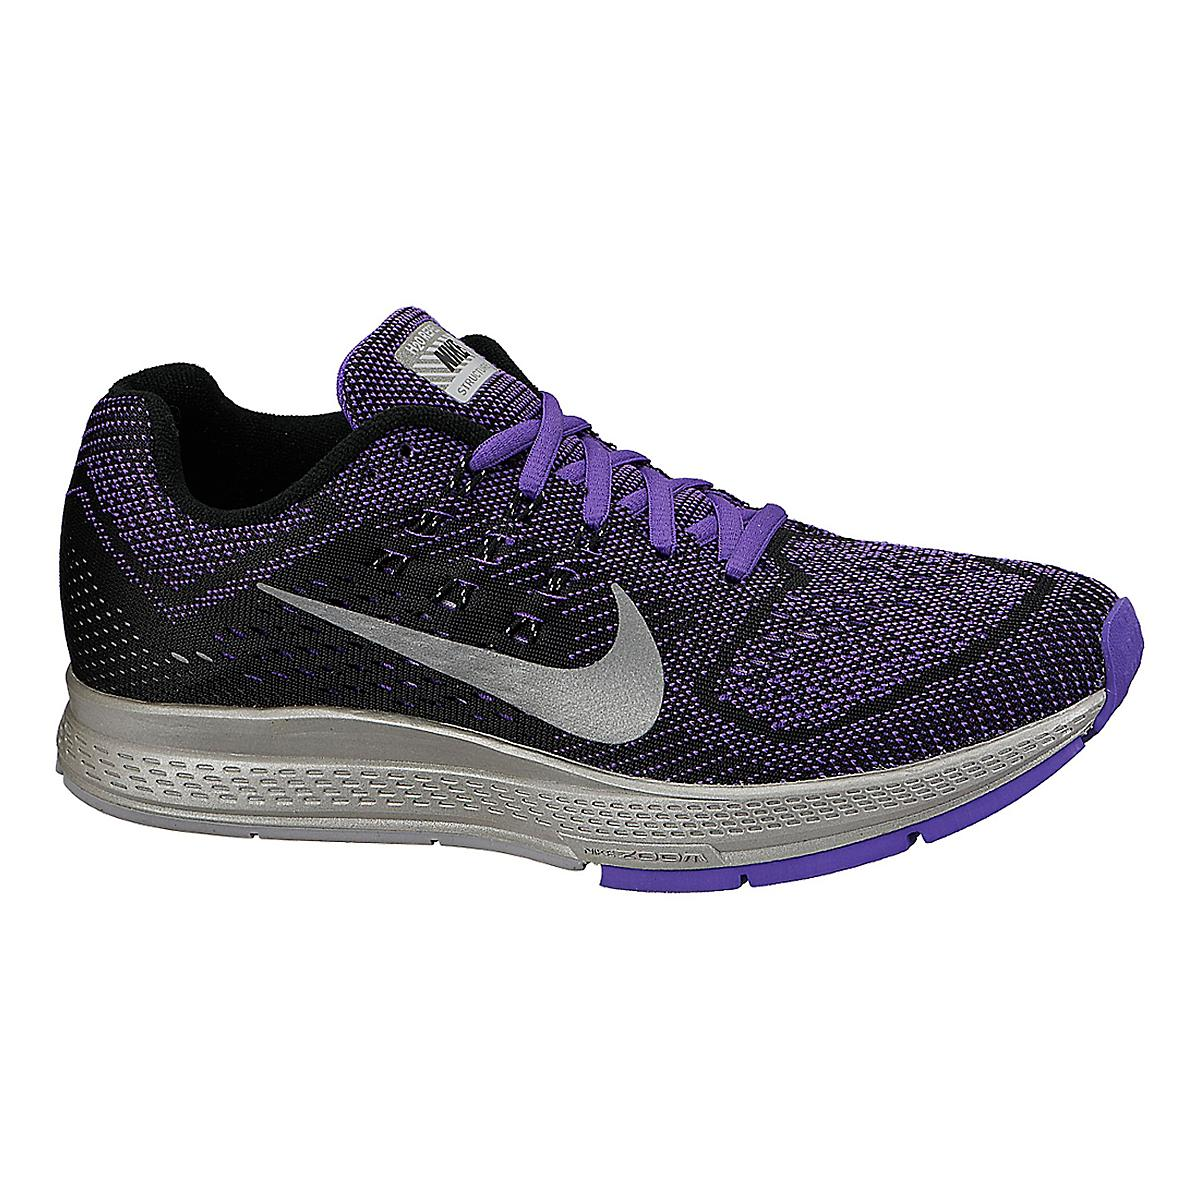 super popular 87a71 0d096 Womens Nike Air Zoom Structure 18 Flash Running Shoe at Road Runner Sports